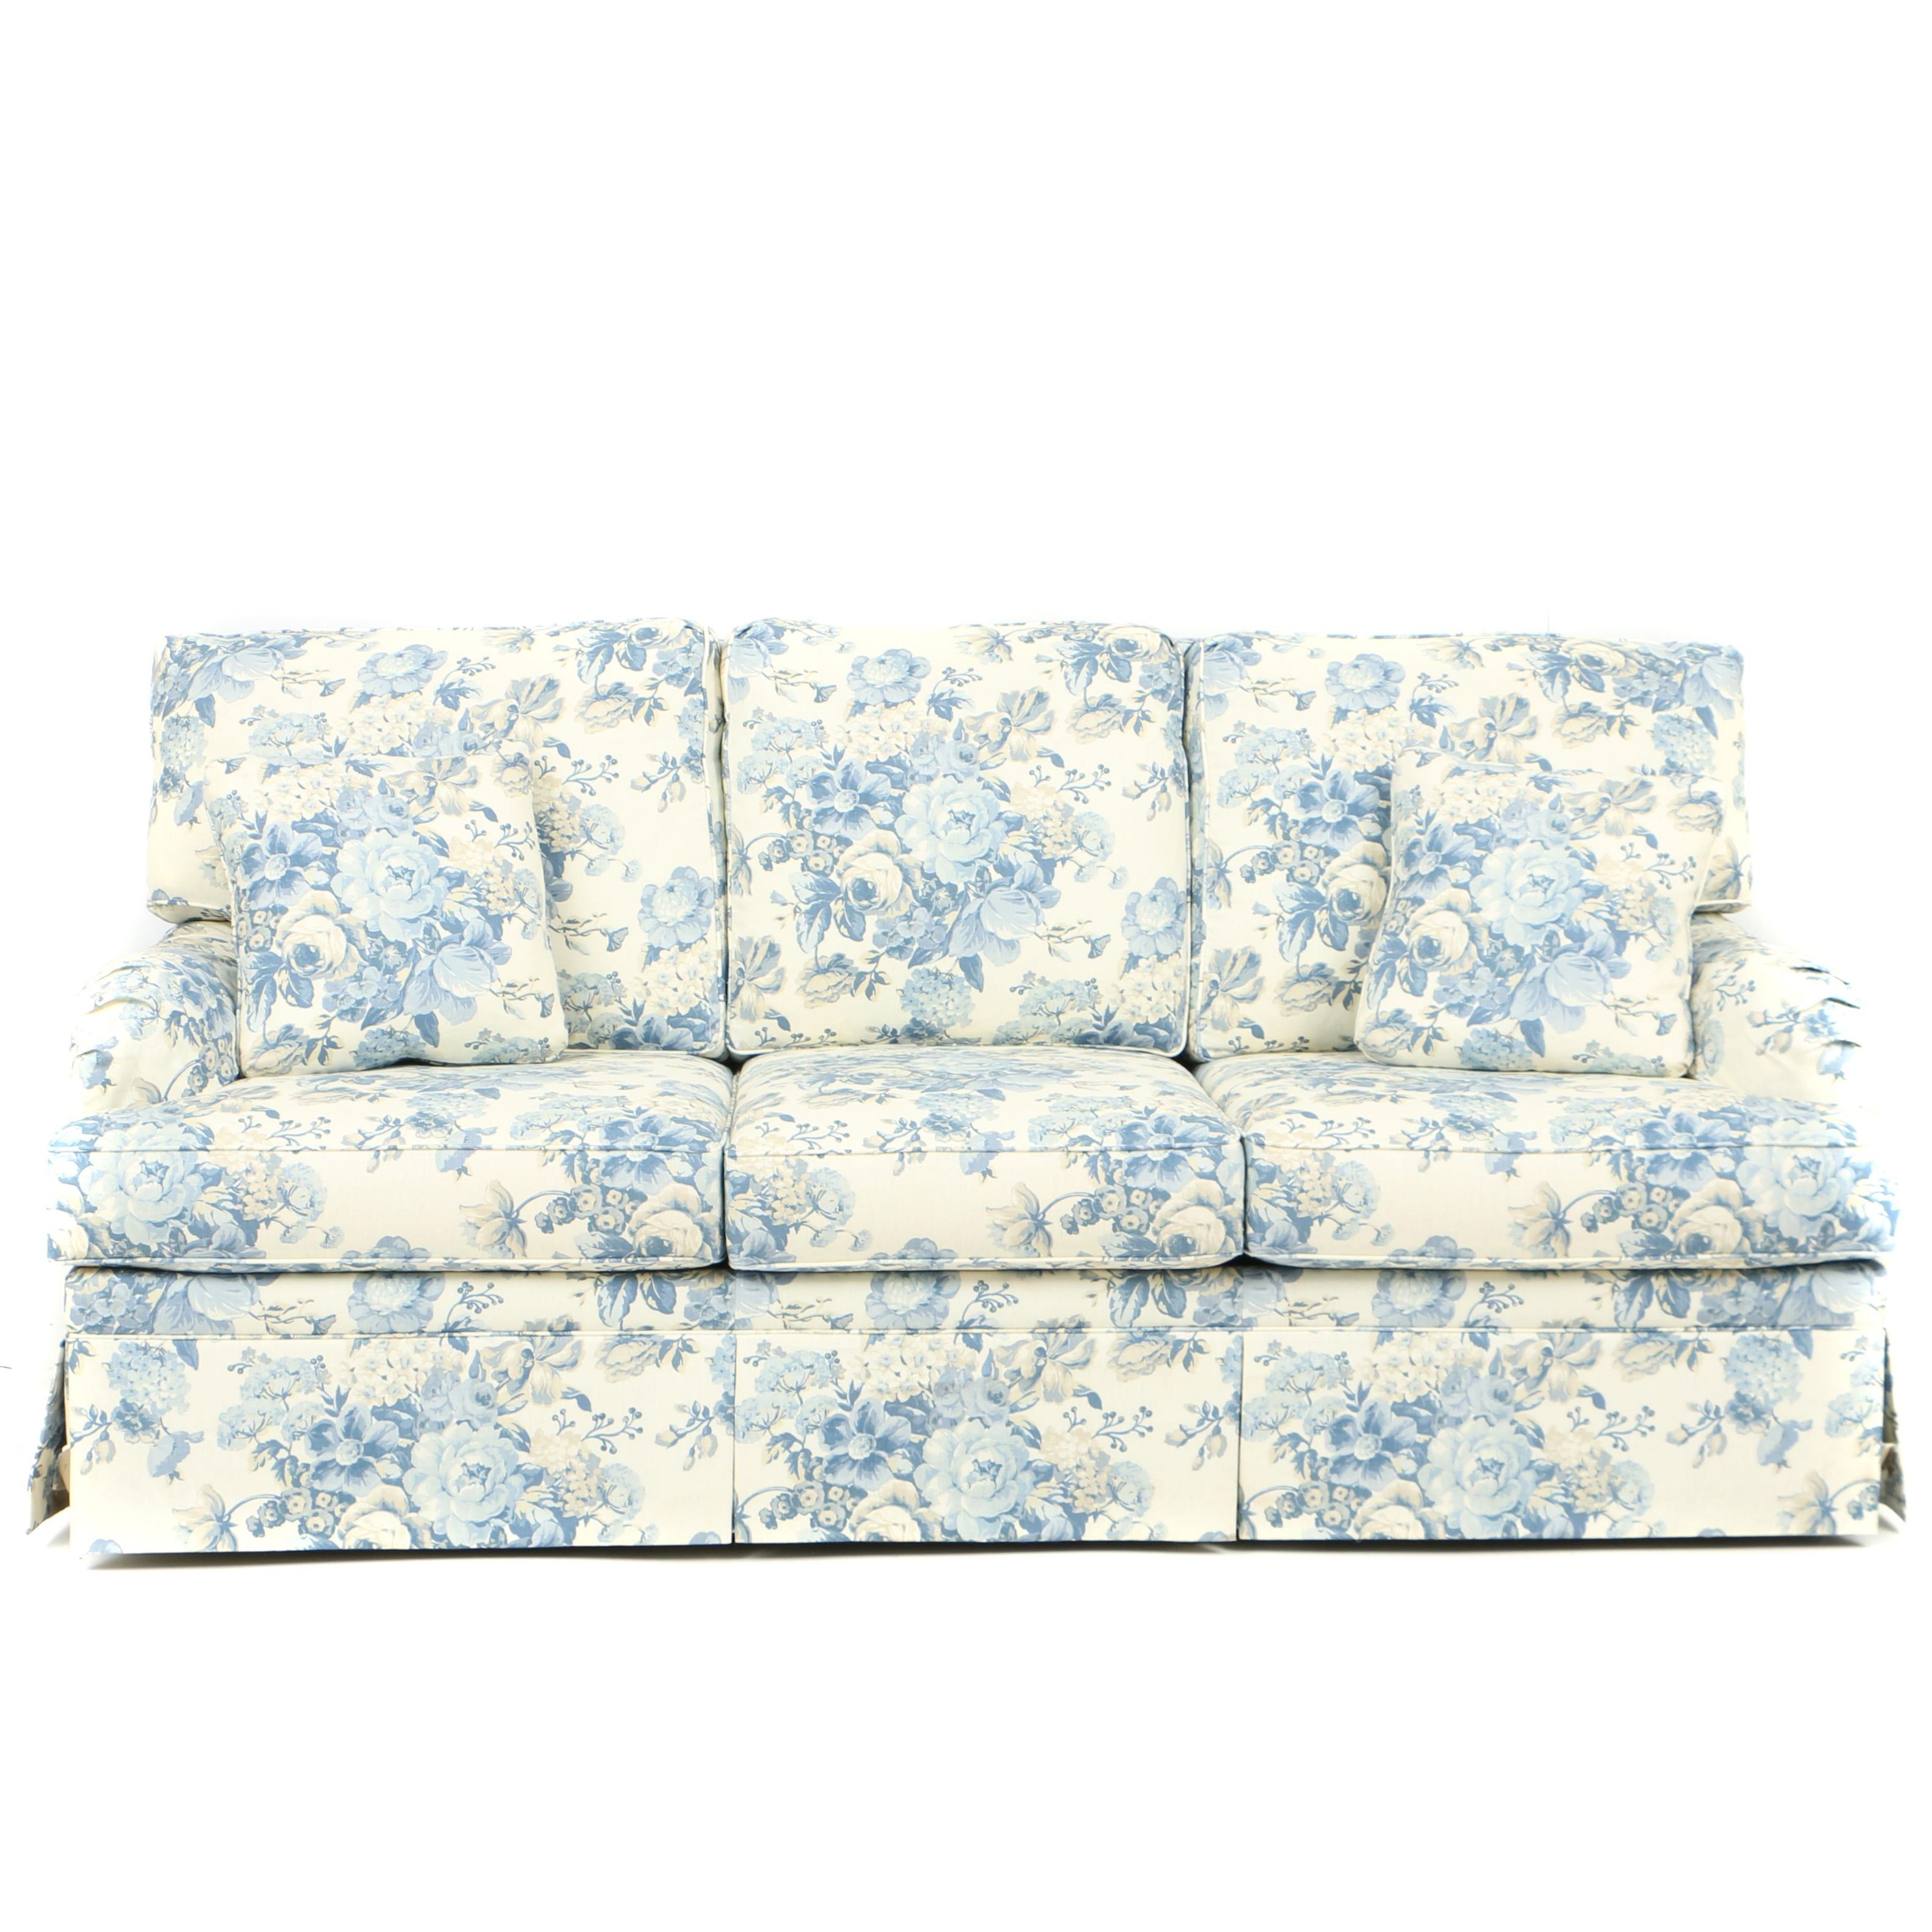 Ethan Allen Three Seat Sofa In Custom, Blue Floral Upholstery ...